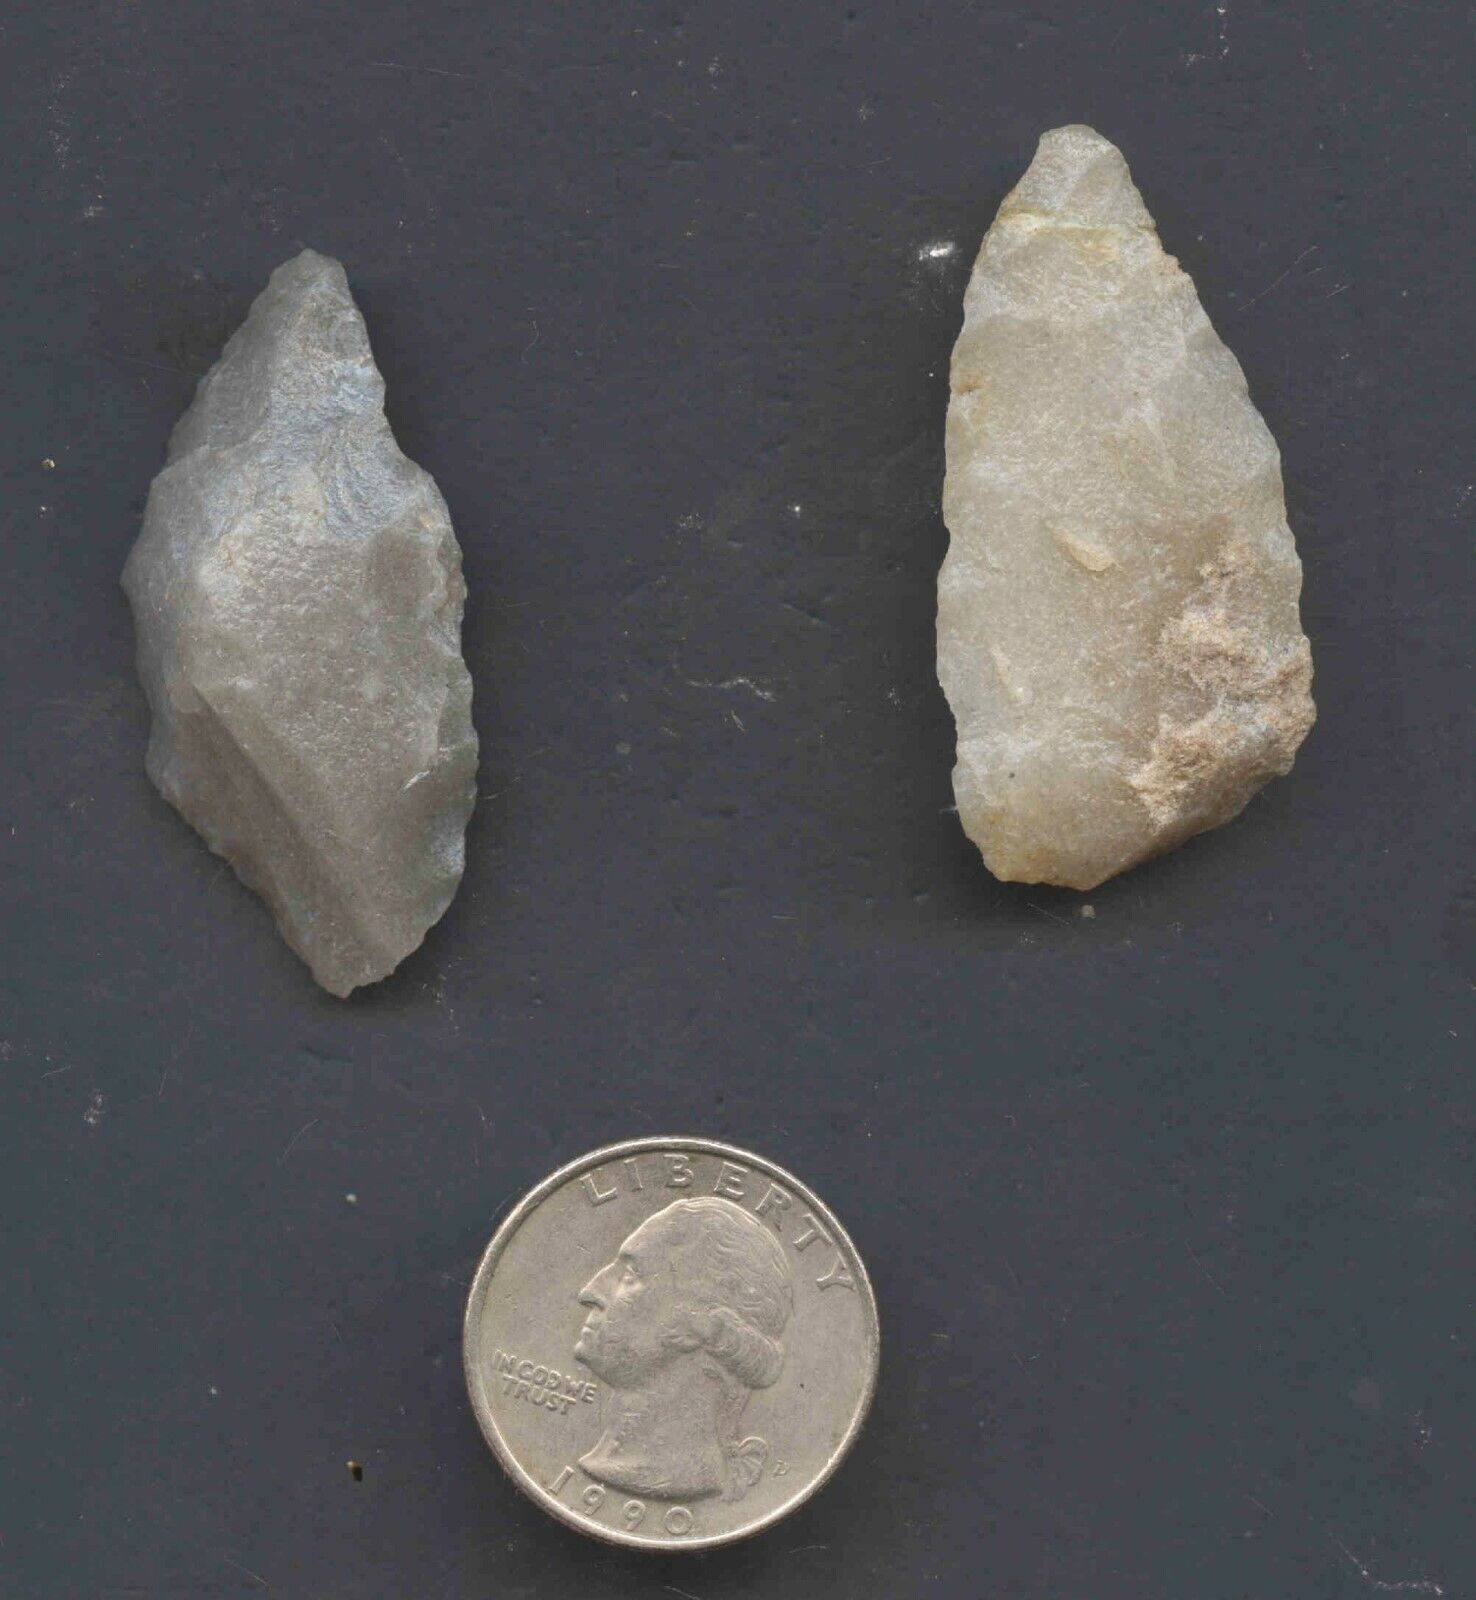 SET OF 2 ARROWHEADS AUTHENTIC NATIVE AMERICAN ARTIFACTS